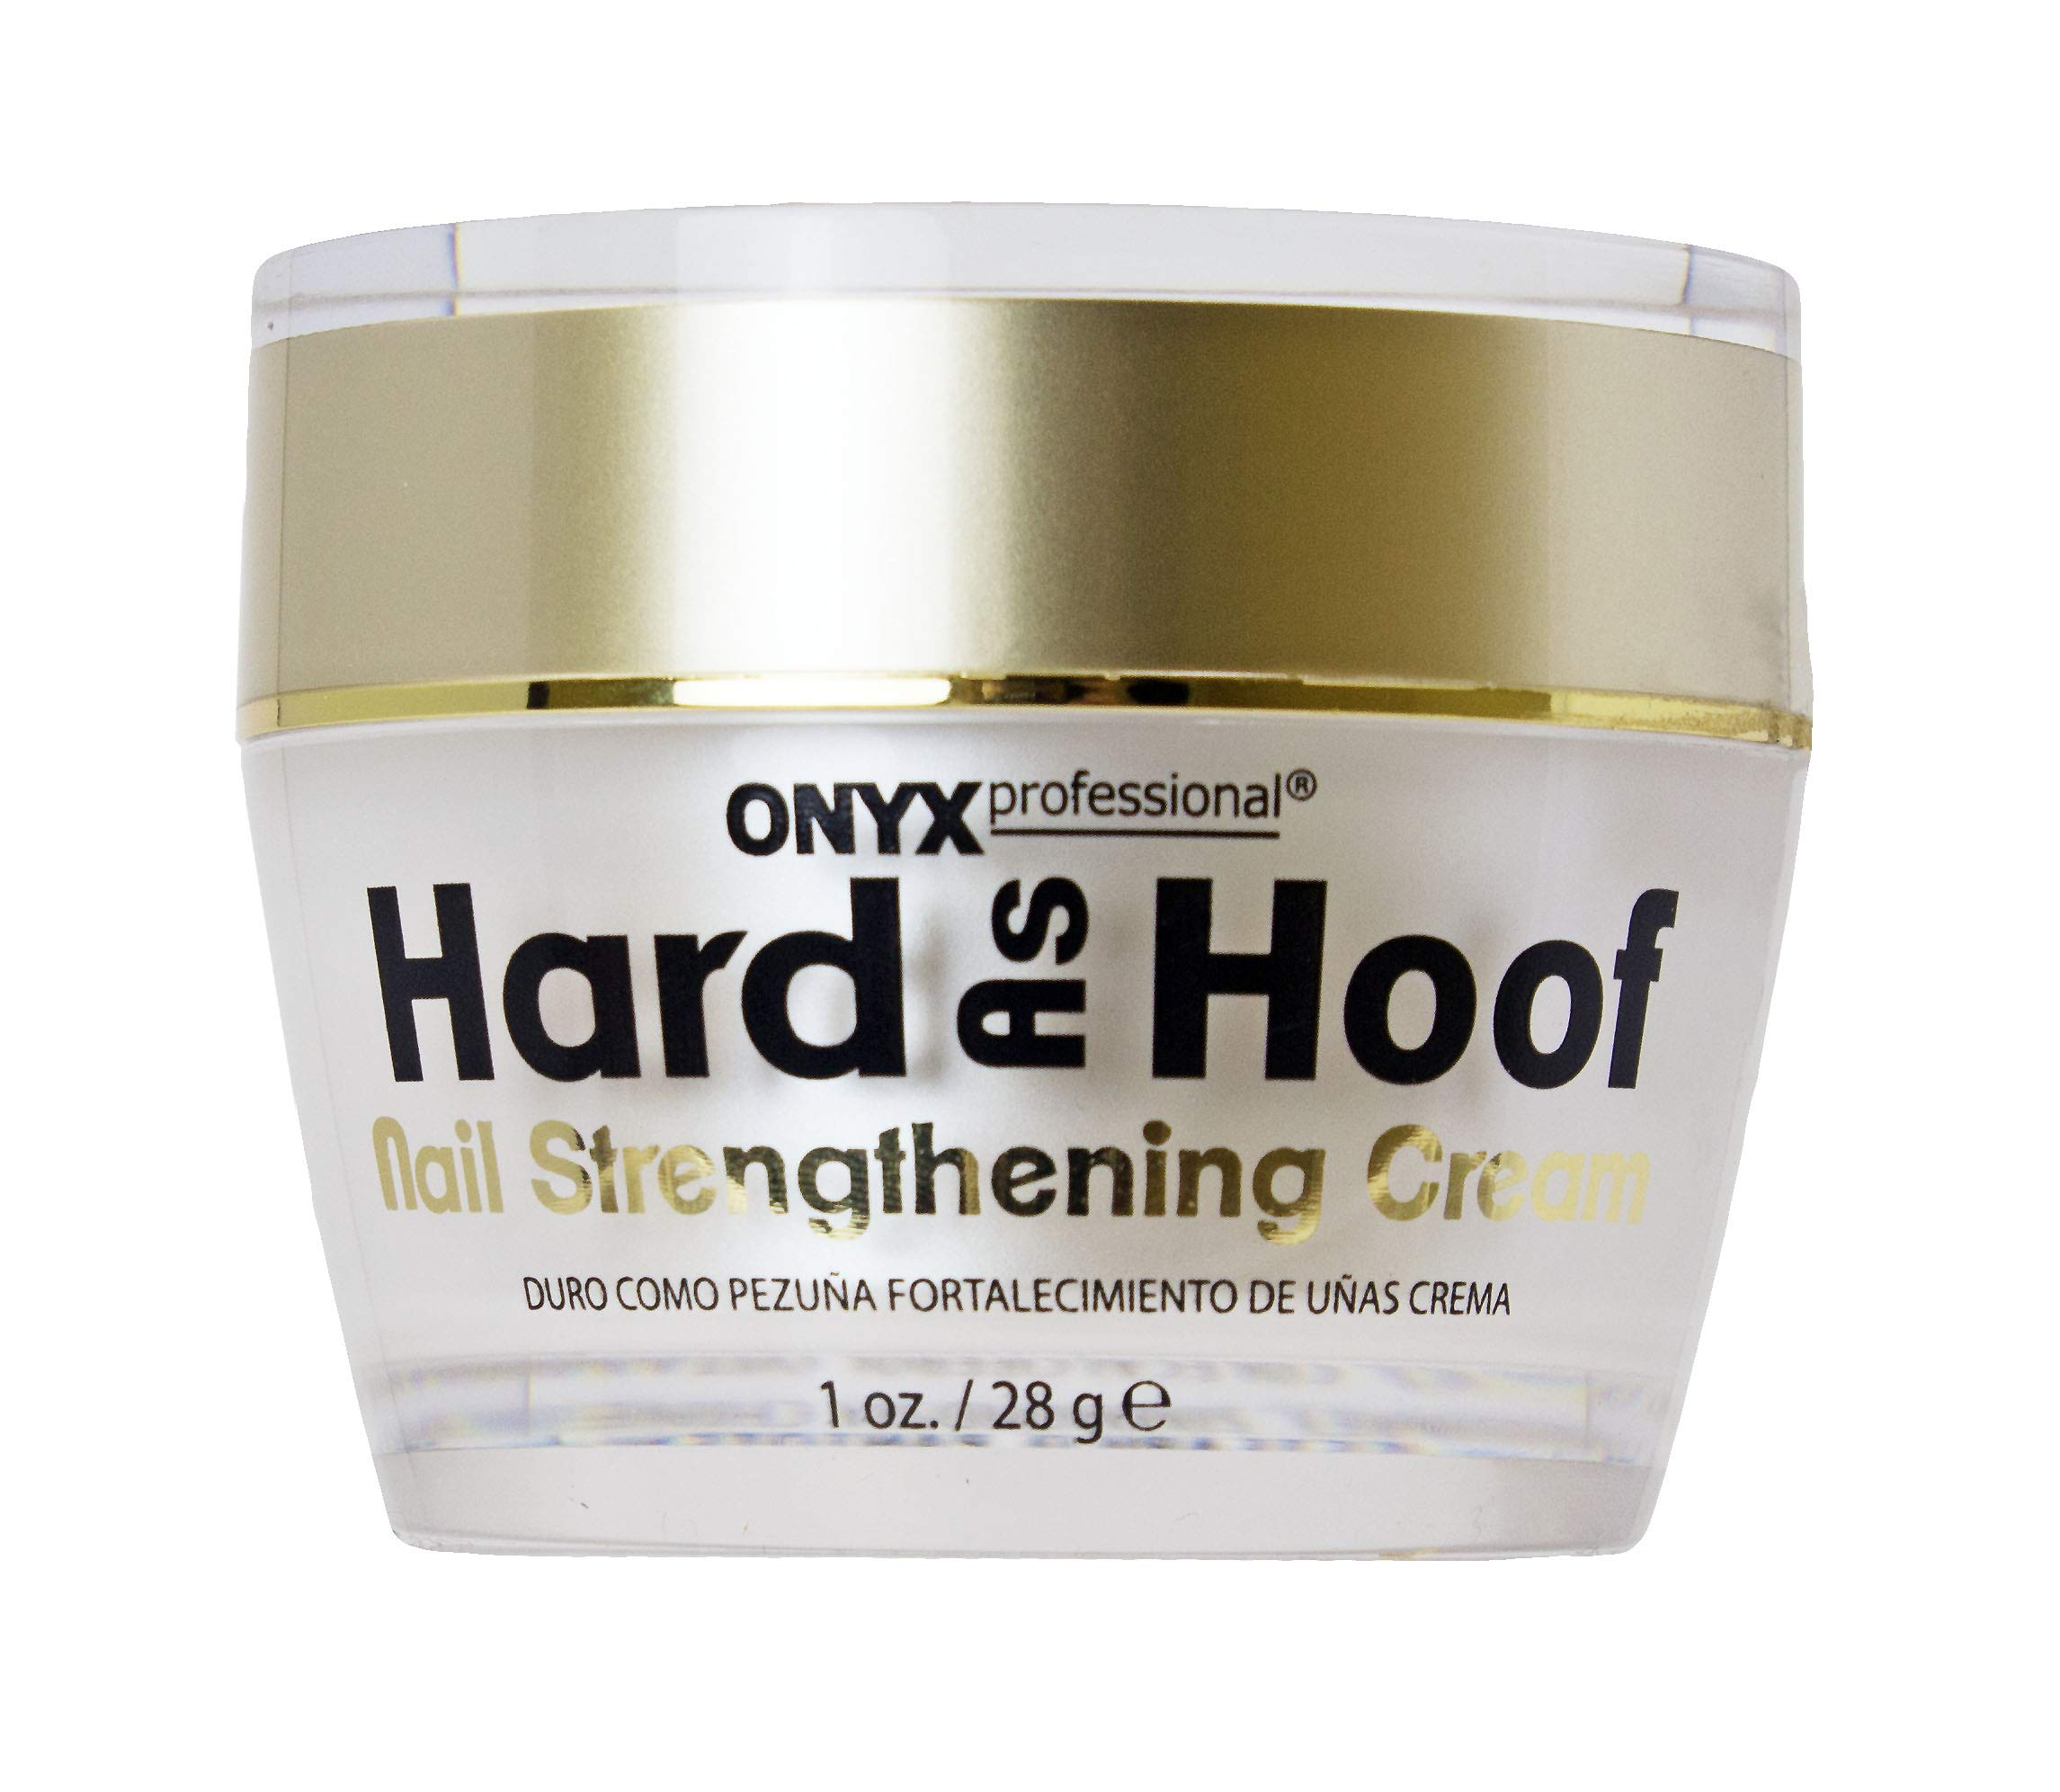 2 Pack Hard As Hoof Nail Strengthening Cream with Coconut Scent Nail Strengthener and Nail Growth Cream, 1 oz by Hoof